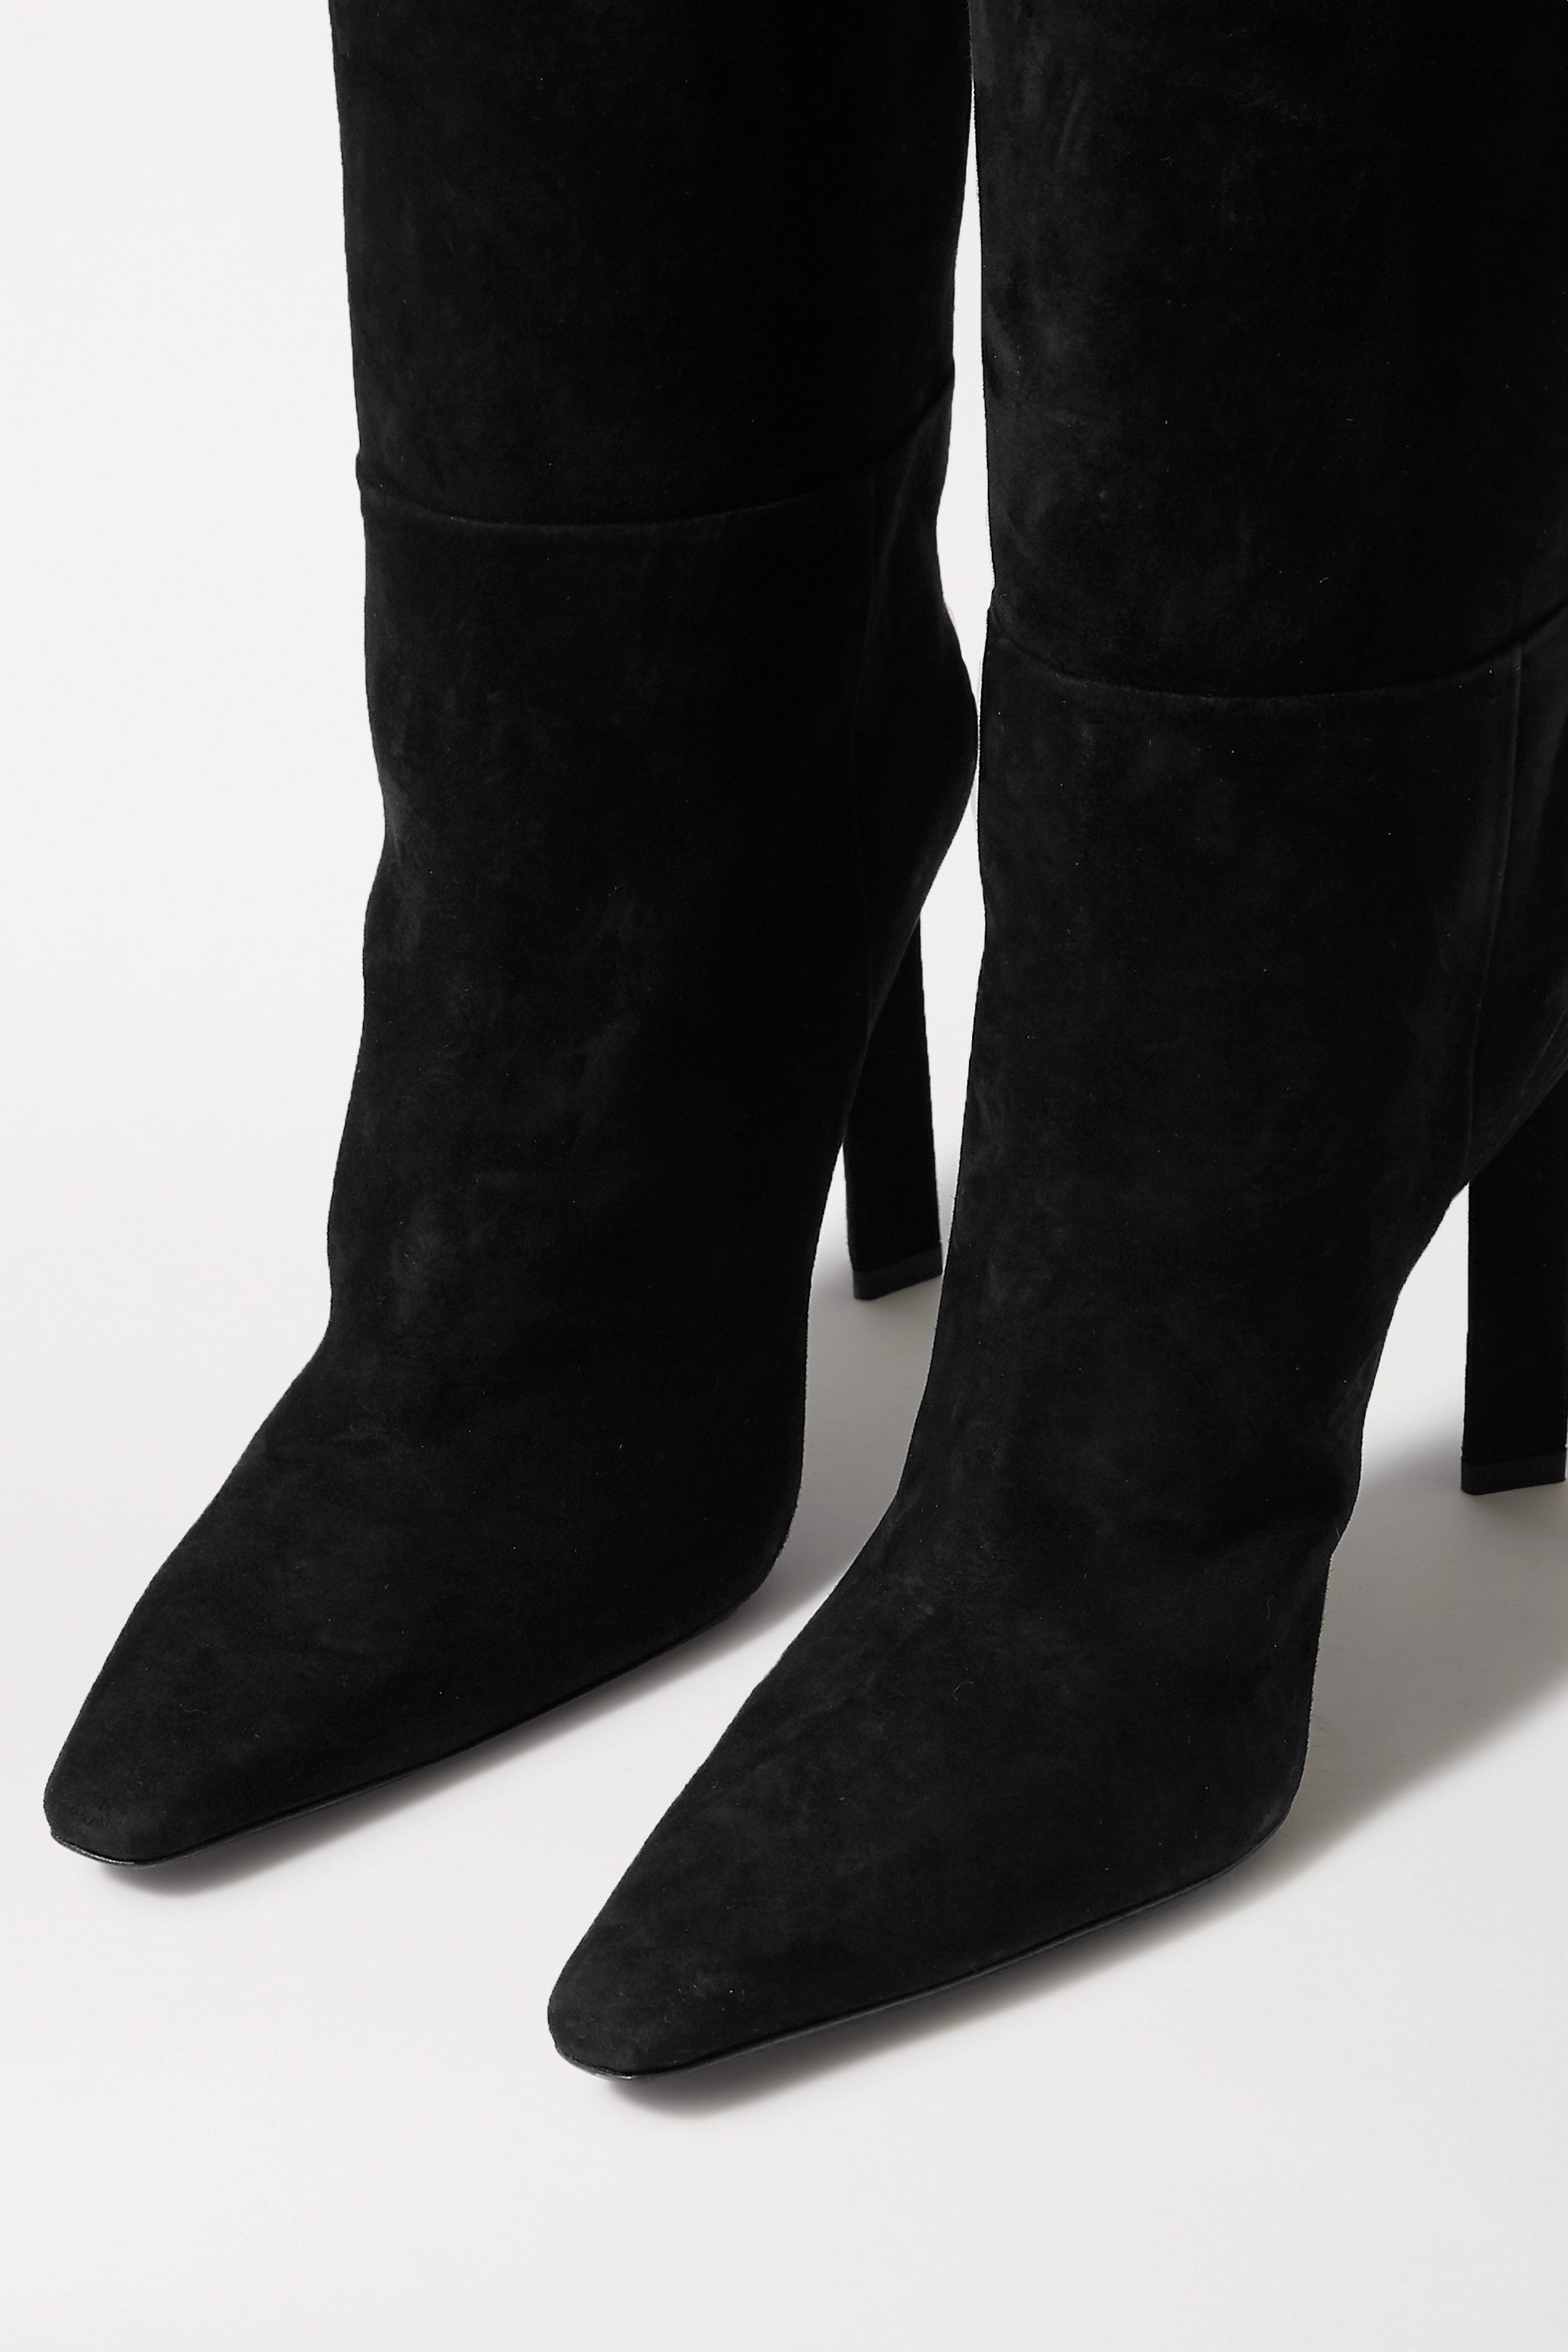 The Attico Suede knee boots